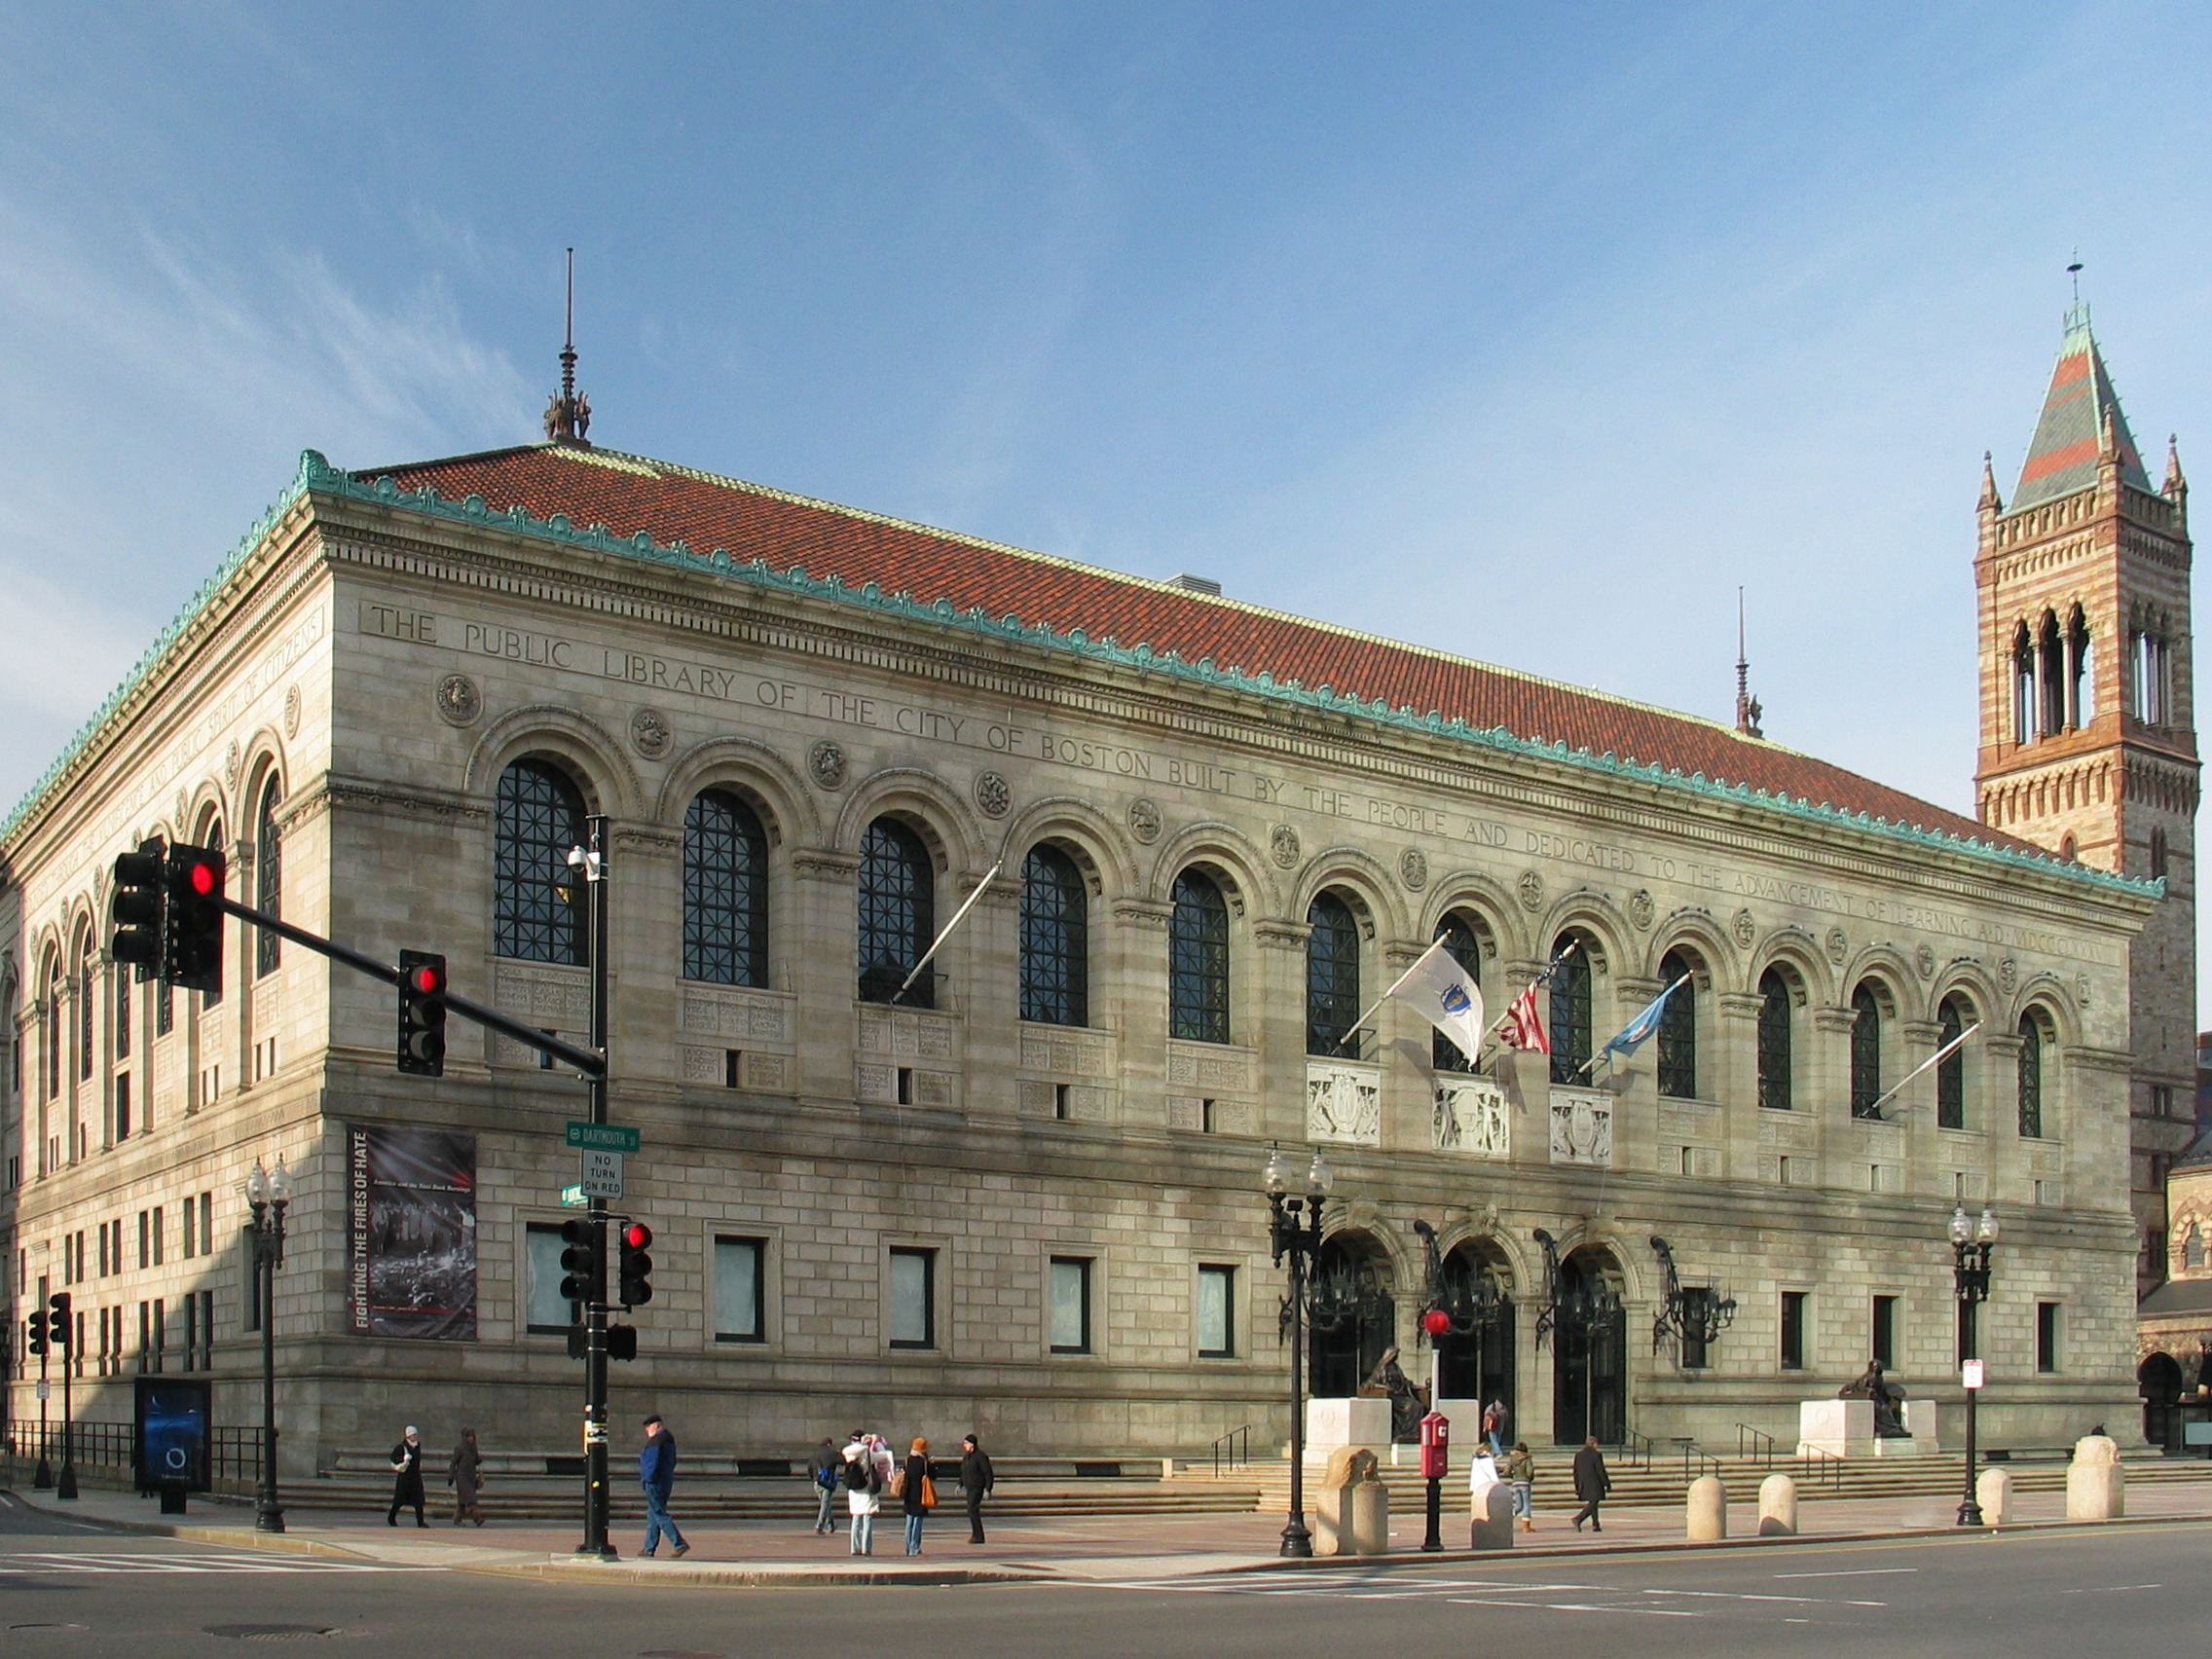 history of bpl The boston public library was formally founded in 1848, and the opening of the east boston branch in 1870 made it the first branch library in the united states there's an enviable collection of .